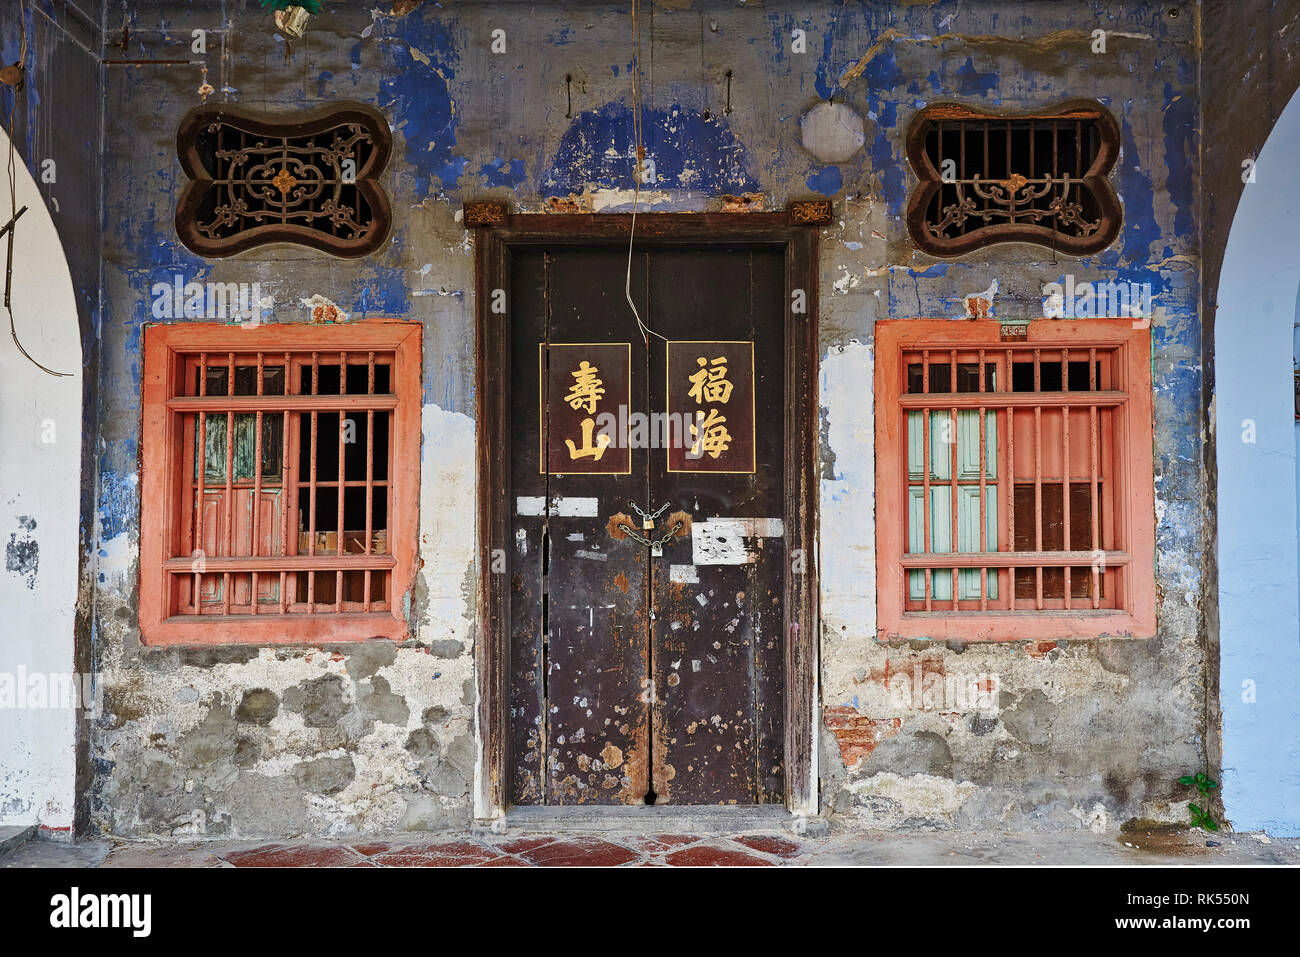 Doorway and Air-vent carved with flowers on a old shophouse building on the street in George Town, Penang, Malaysia - Stock Image